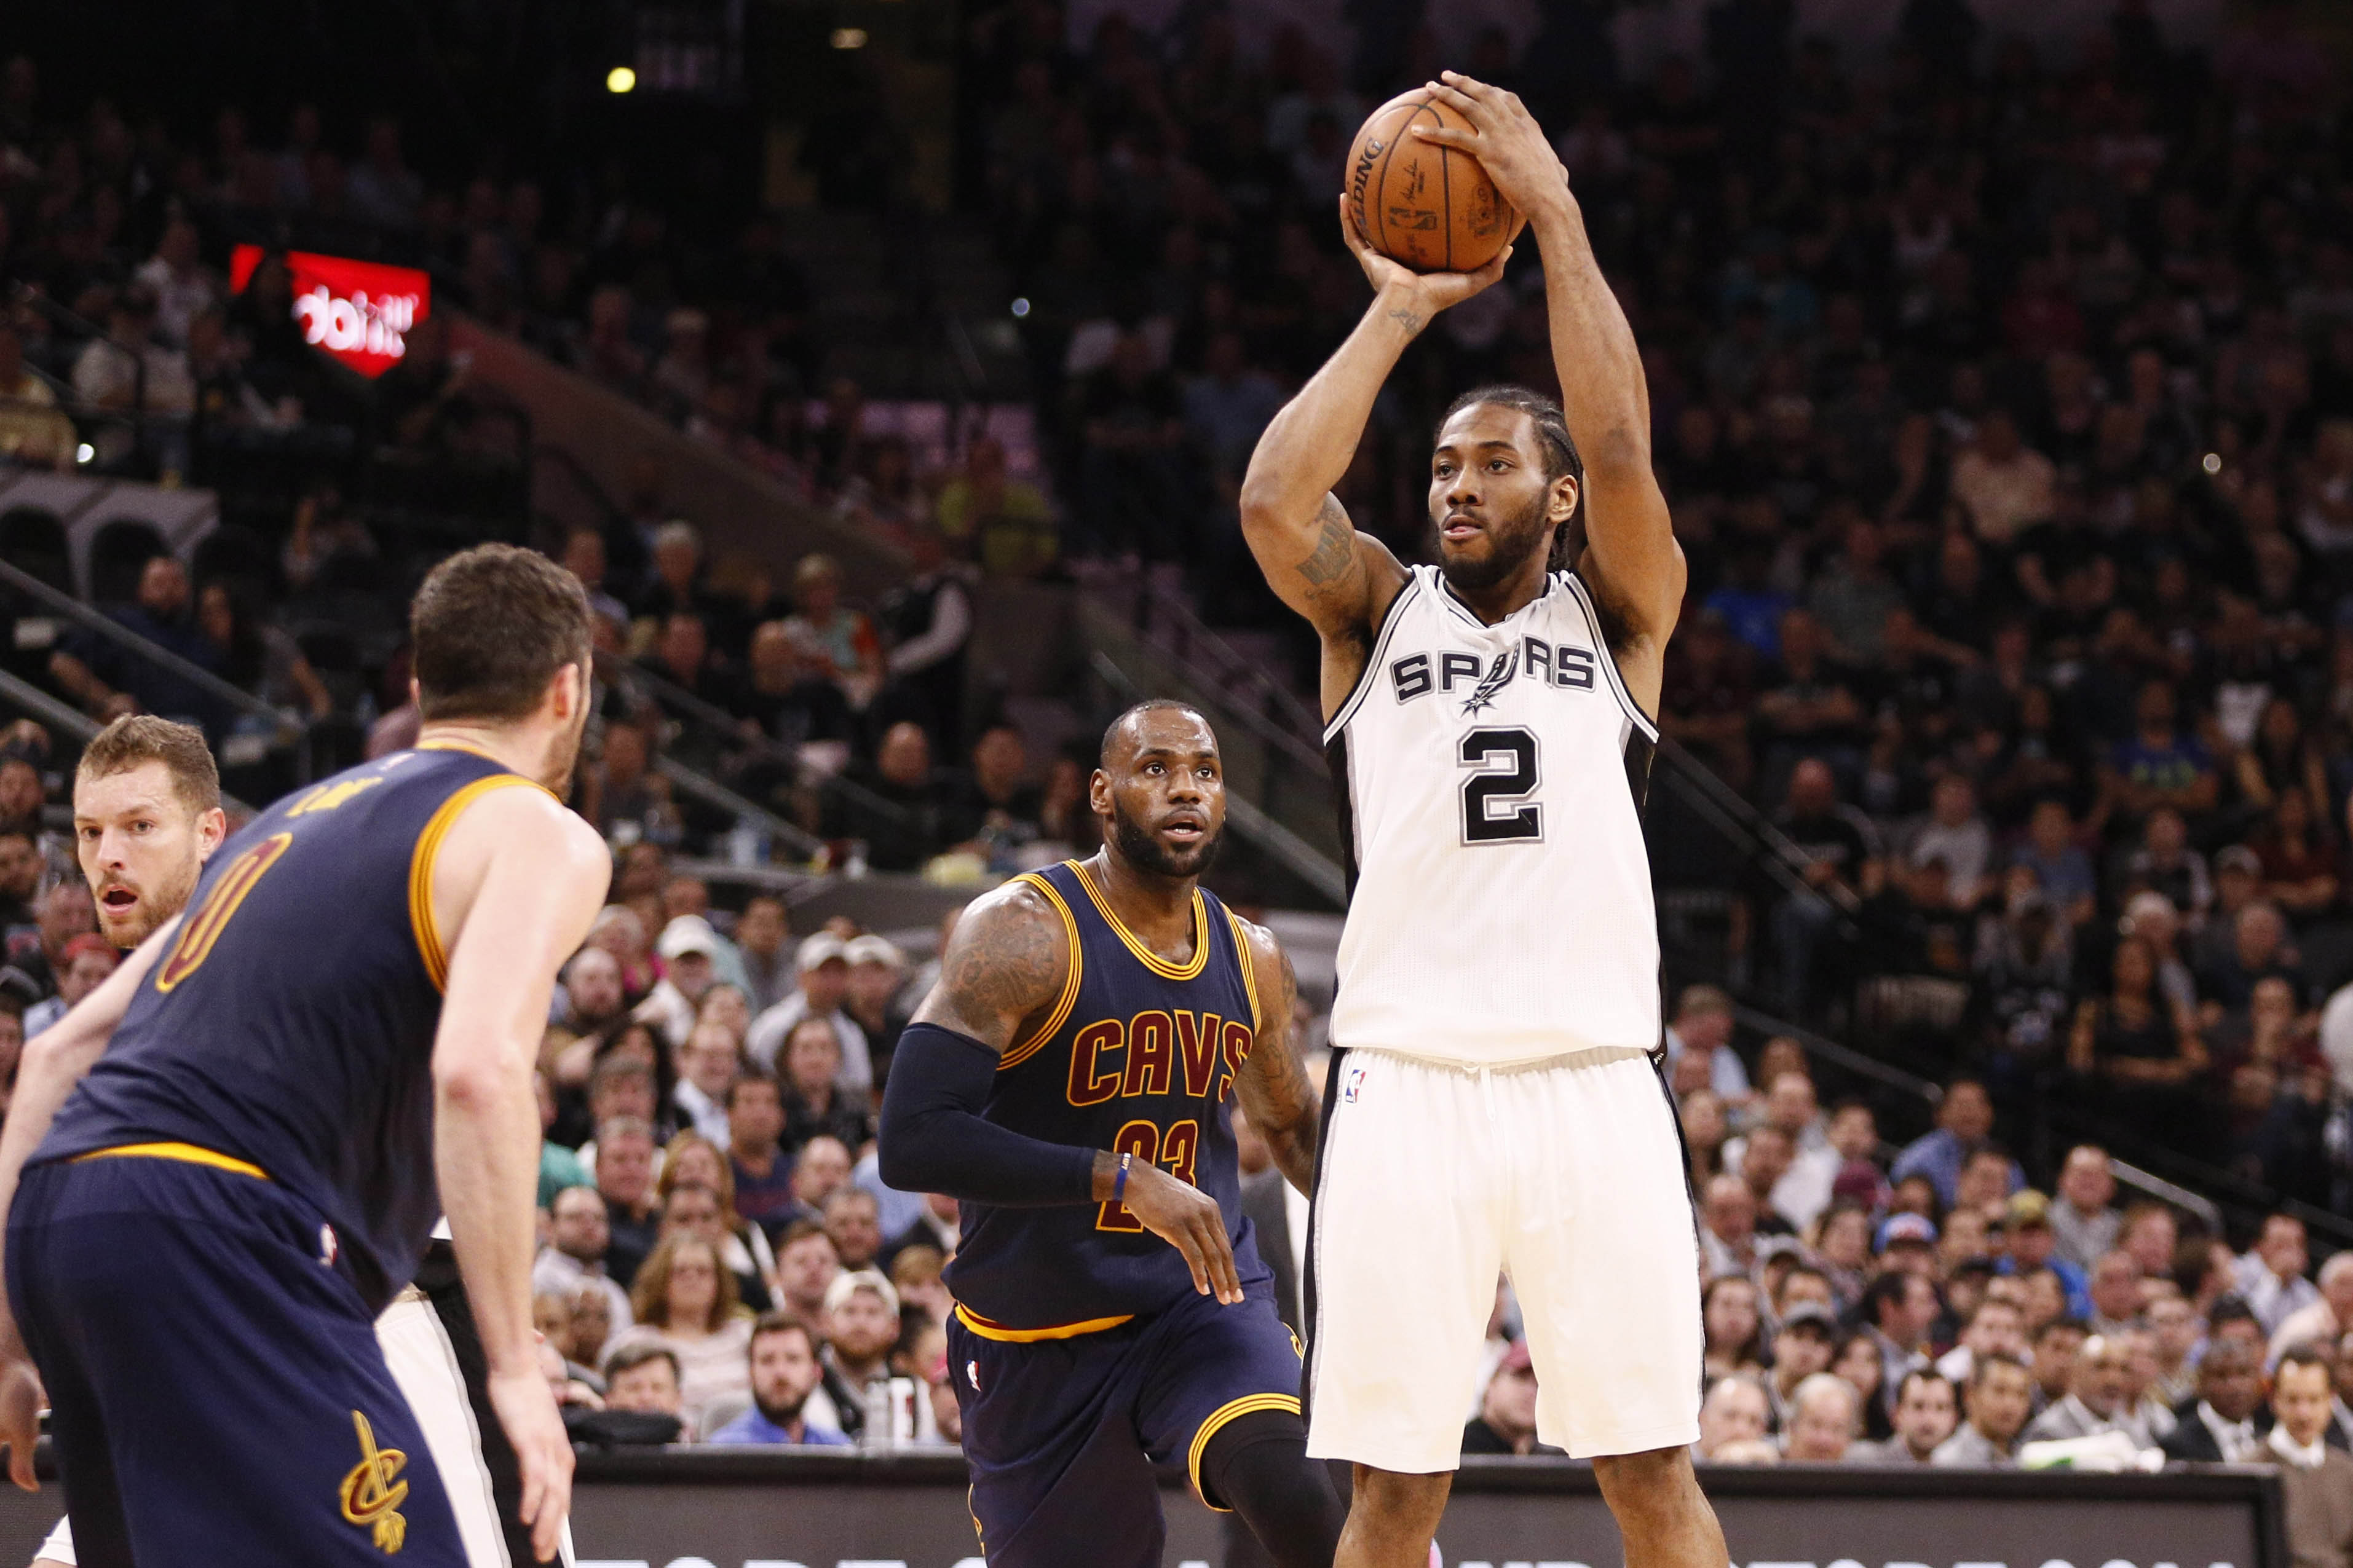 9975799-nba-cleveland-cavaliers-at-san-antonio-spurs